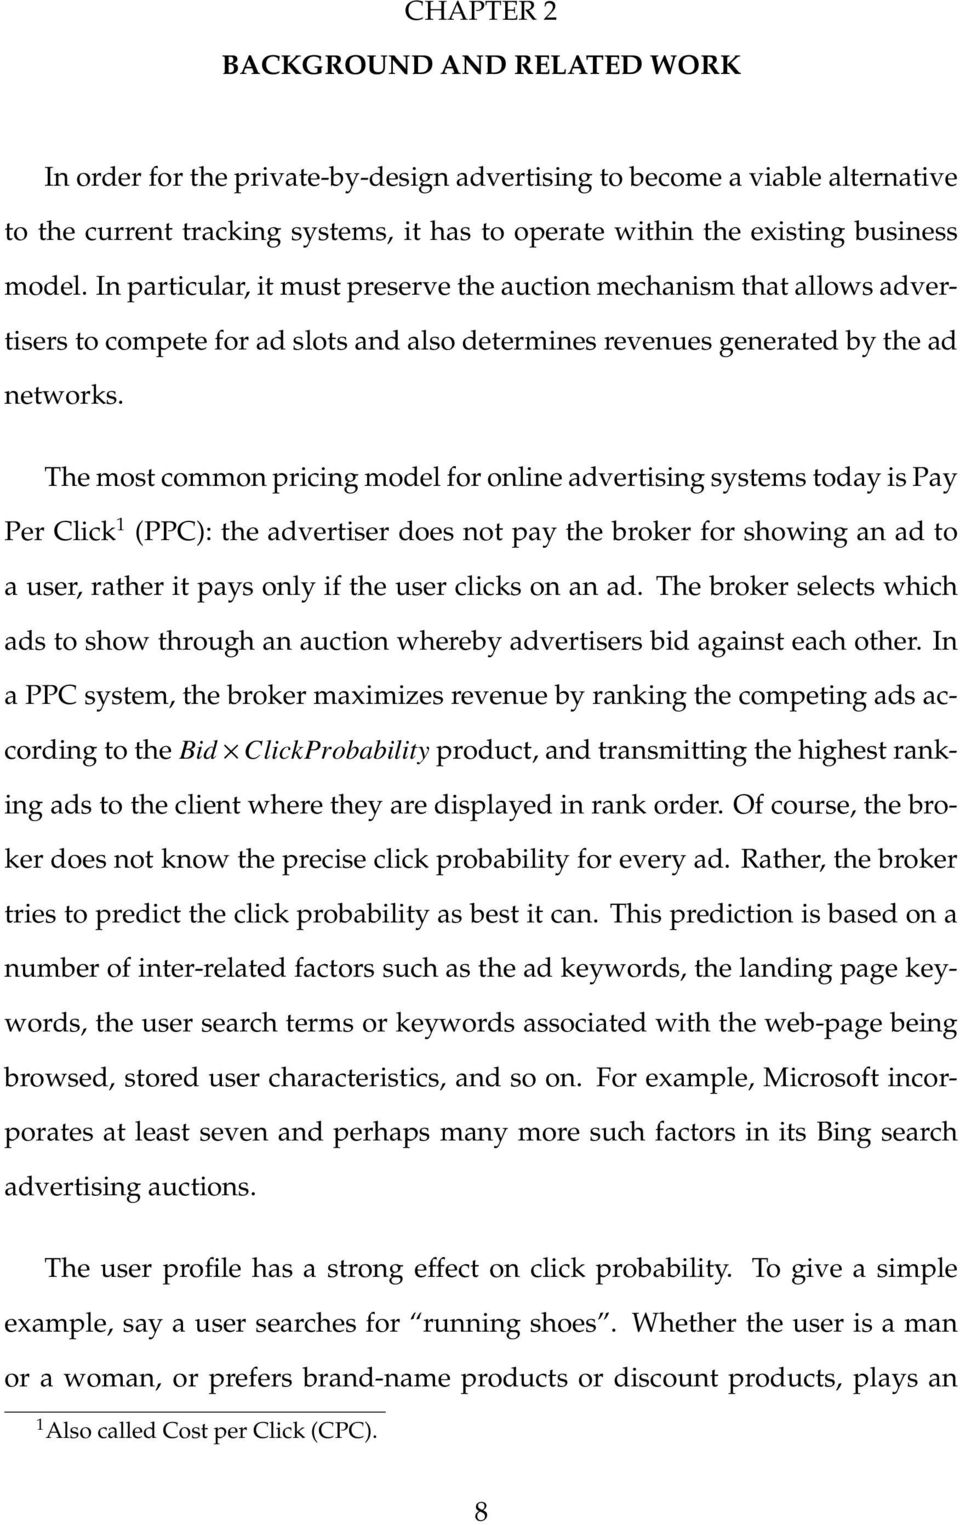 The most common pricing model for online advertising systems today is Pay Per Click 1 (PPC): the advertiser does not pay the broker for showing an ad to a user, rather it pays only if the user clicks